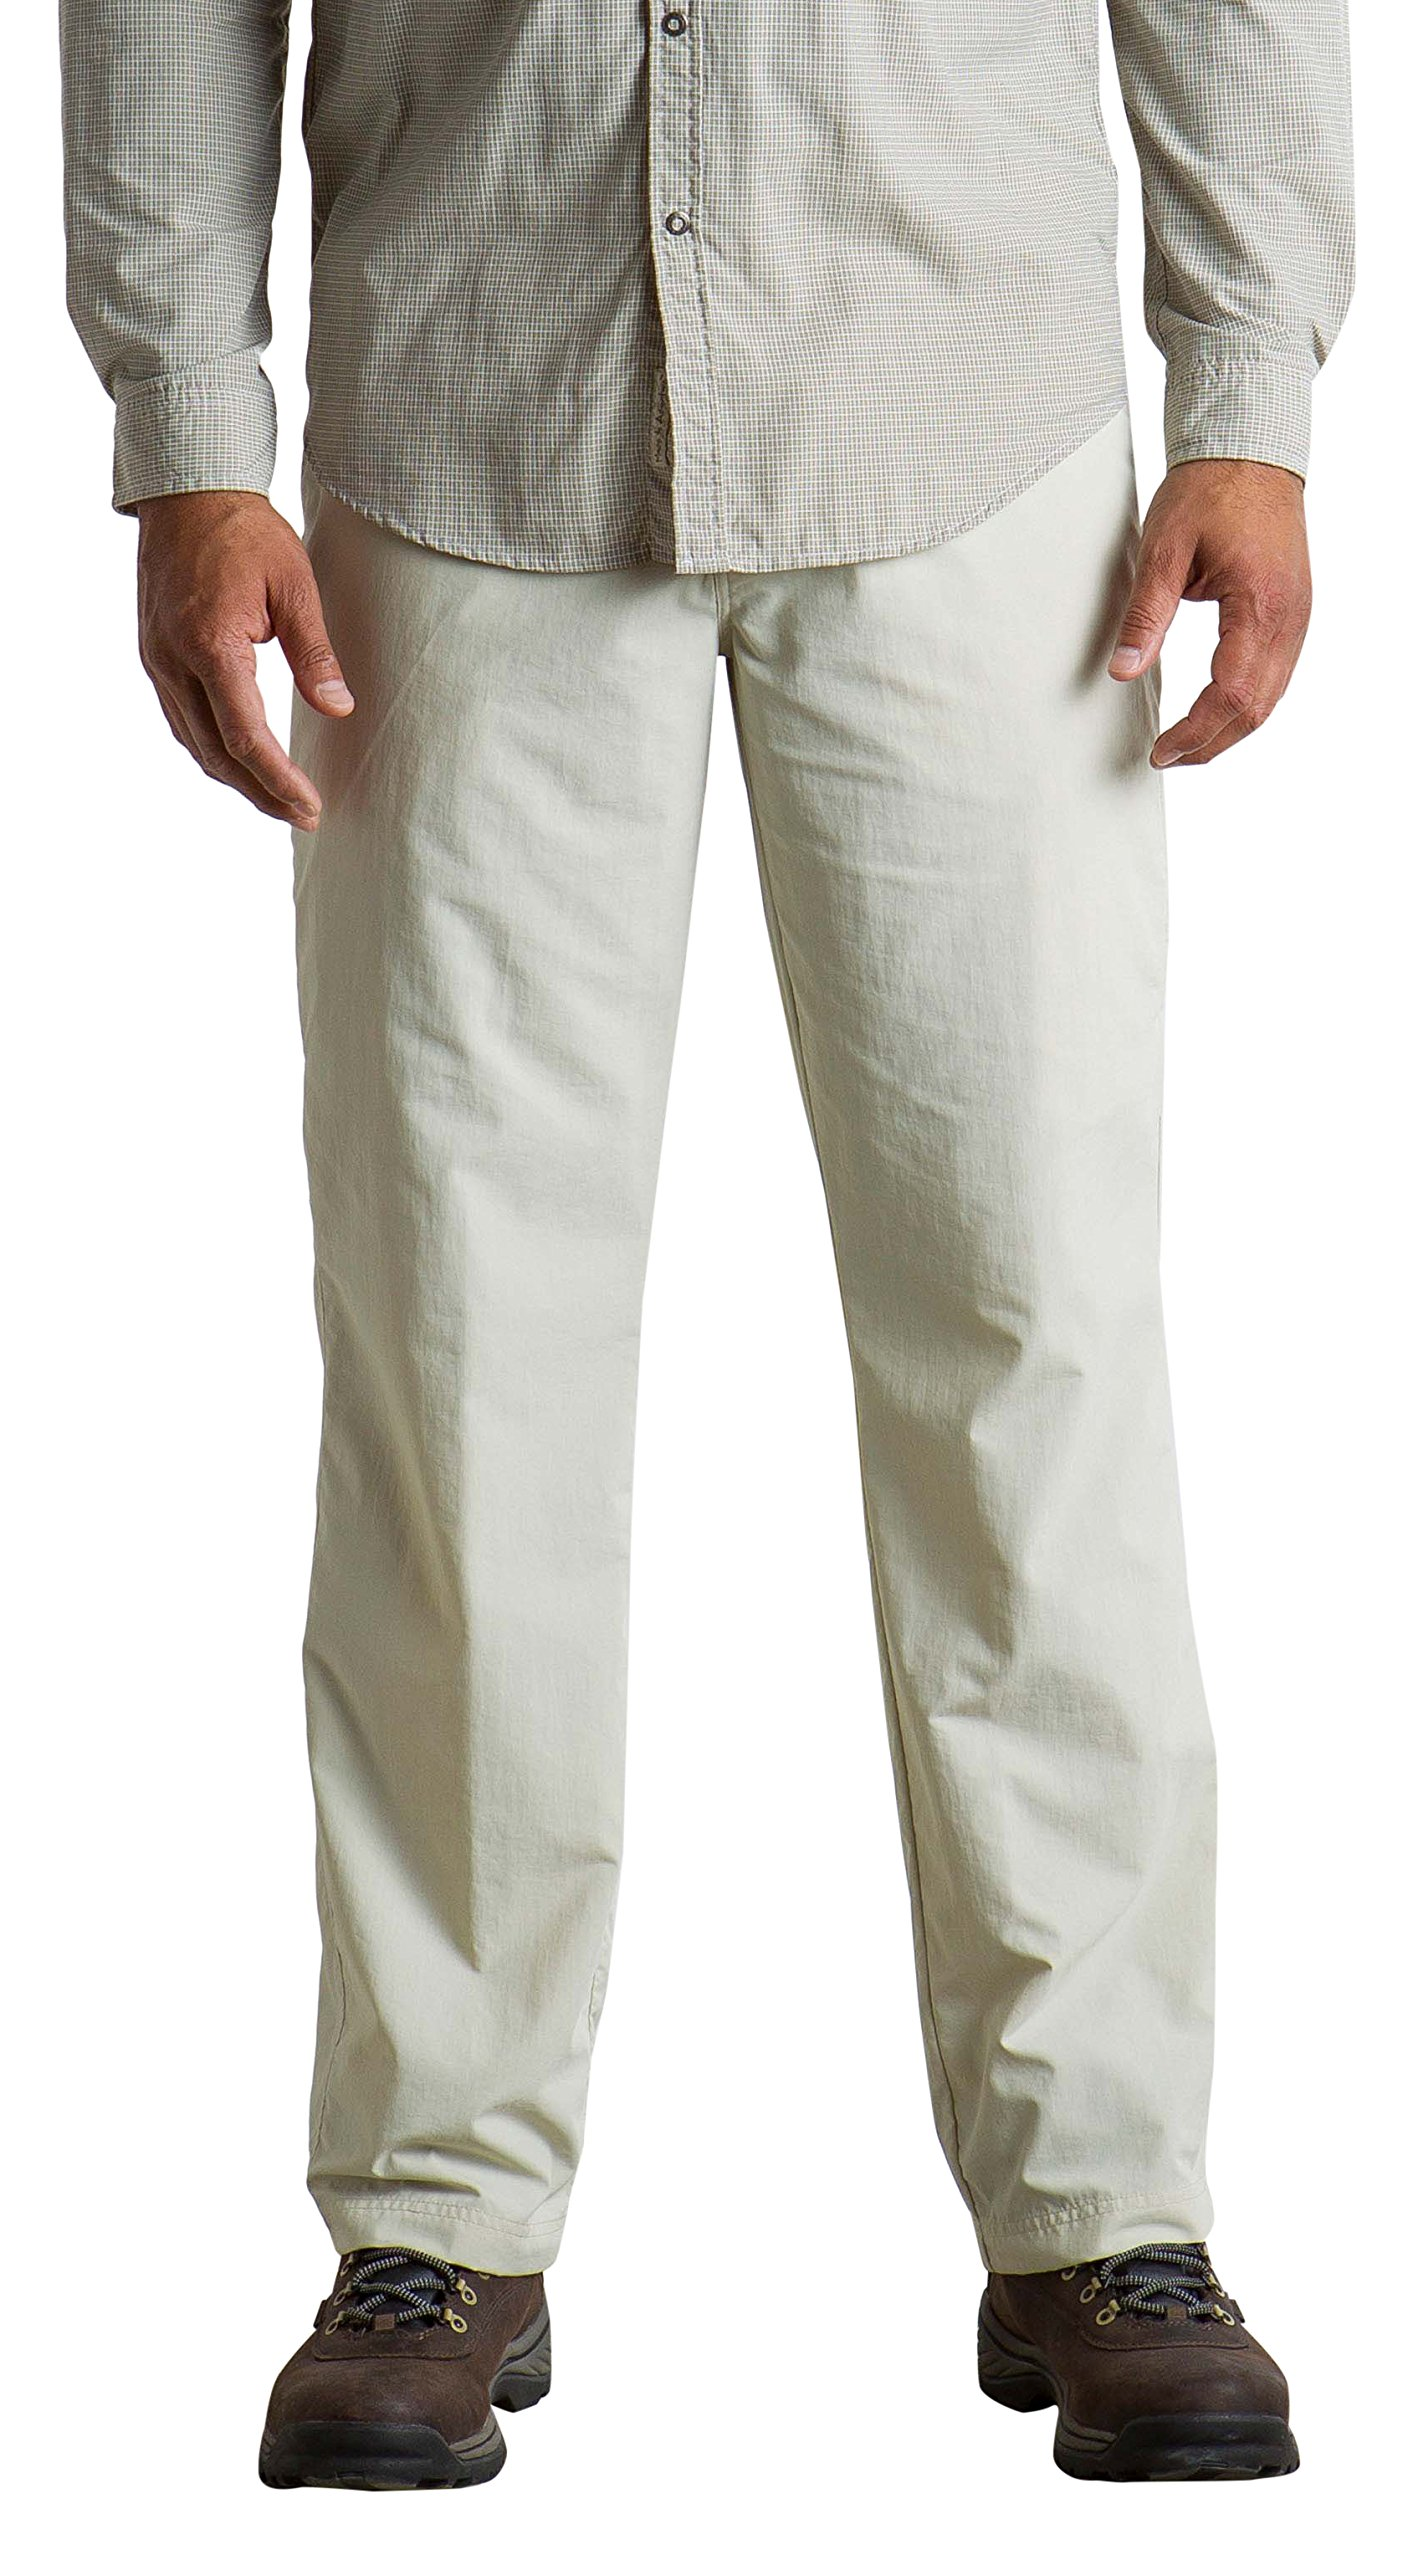 ExOfficio Men's Sol Cool Nomad Lightweight Casual Pants, Light Stone, Size 34